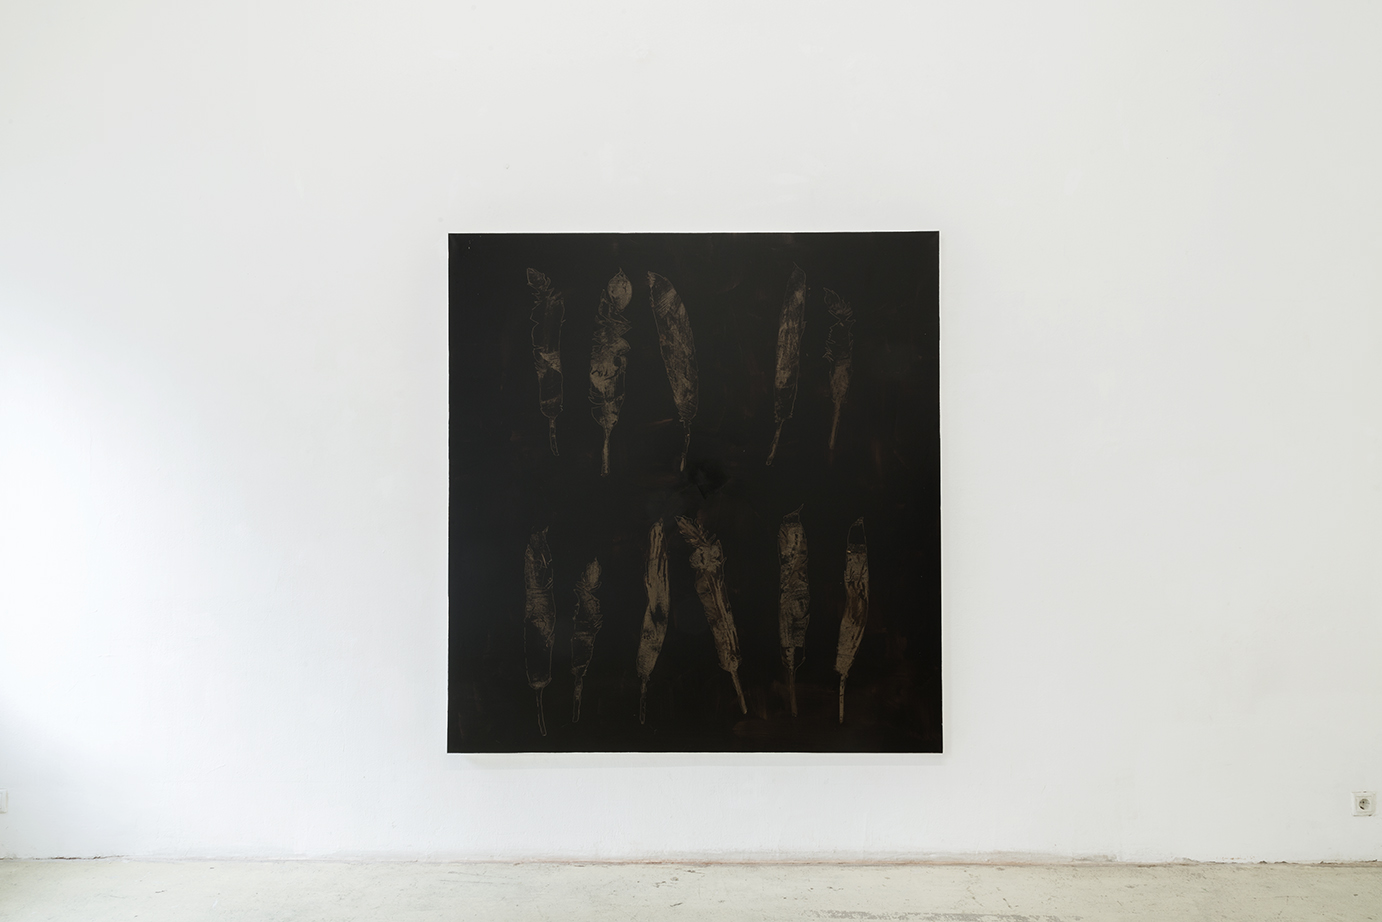 Nora Kapfer, untitled, 2018 bitumen on canvas, 190 x 180 cm